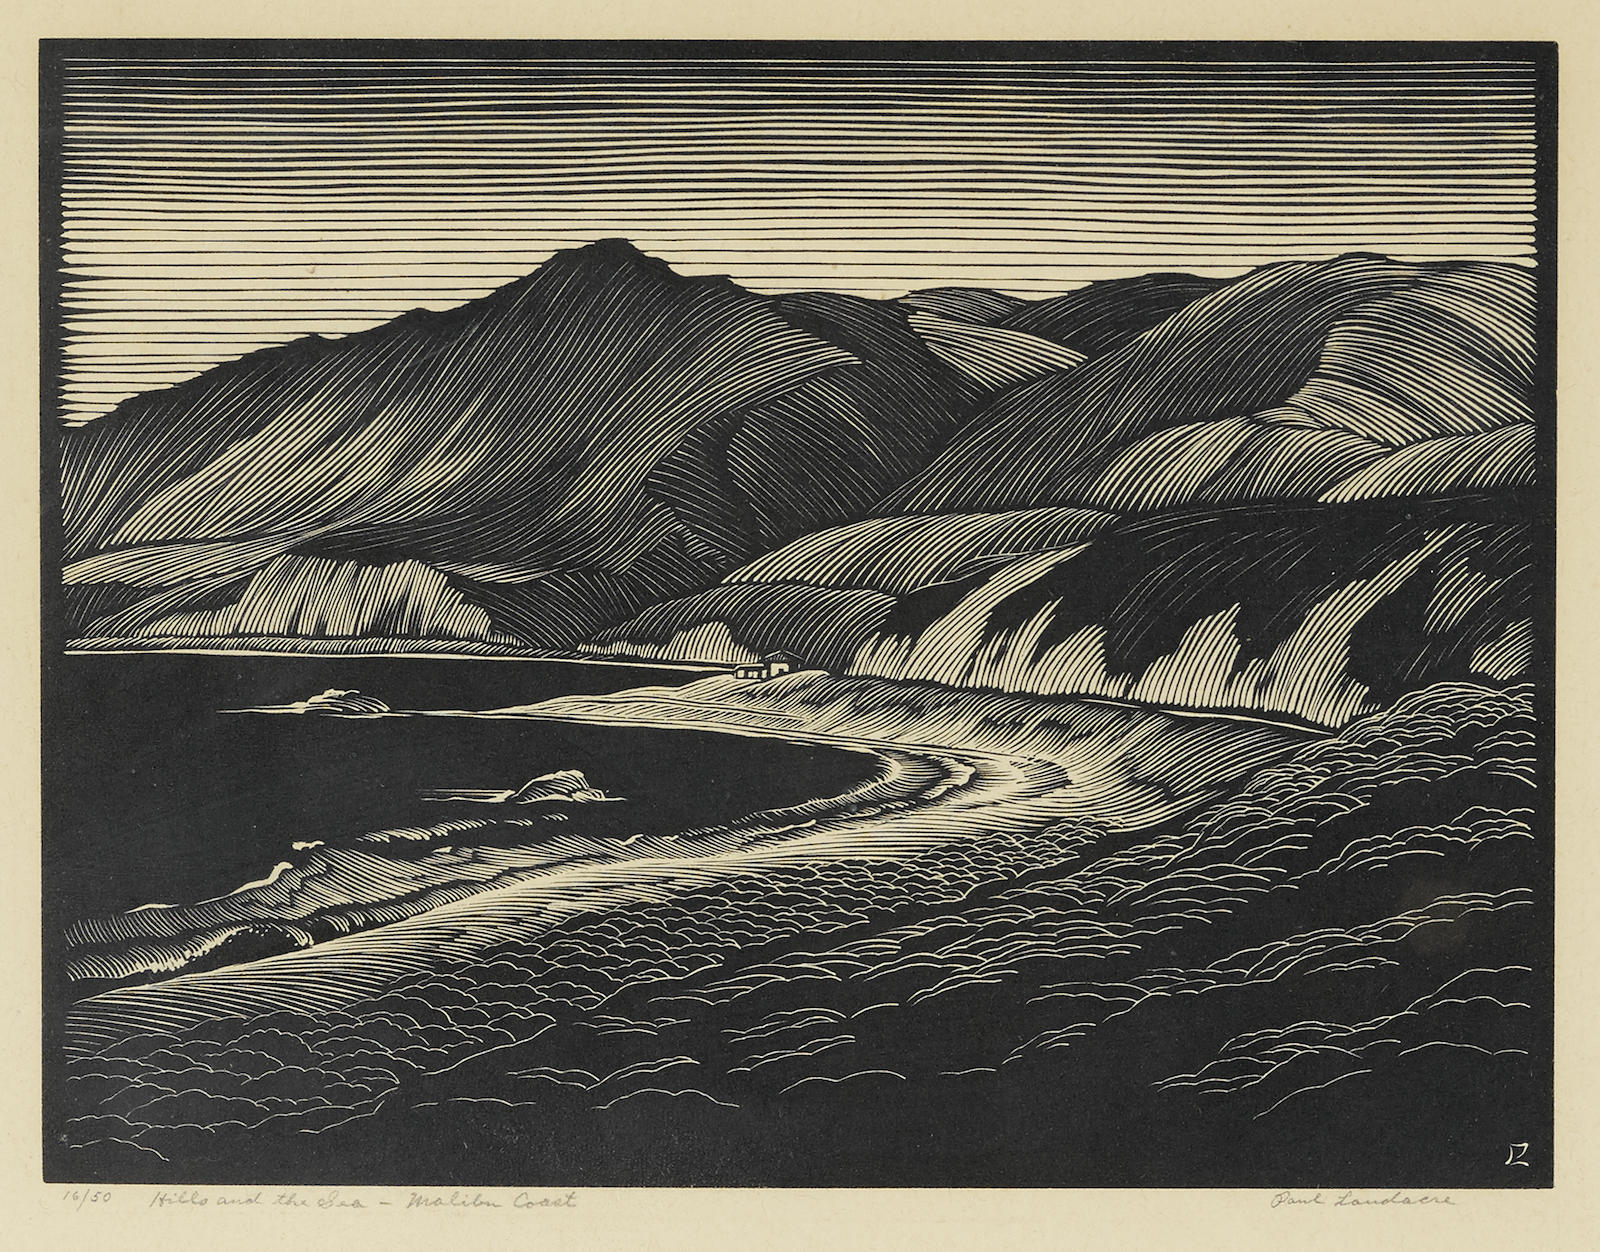 Paul Landacre-Hills And The Sea - Malibu Coast-1930